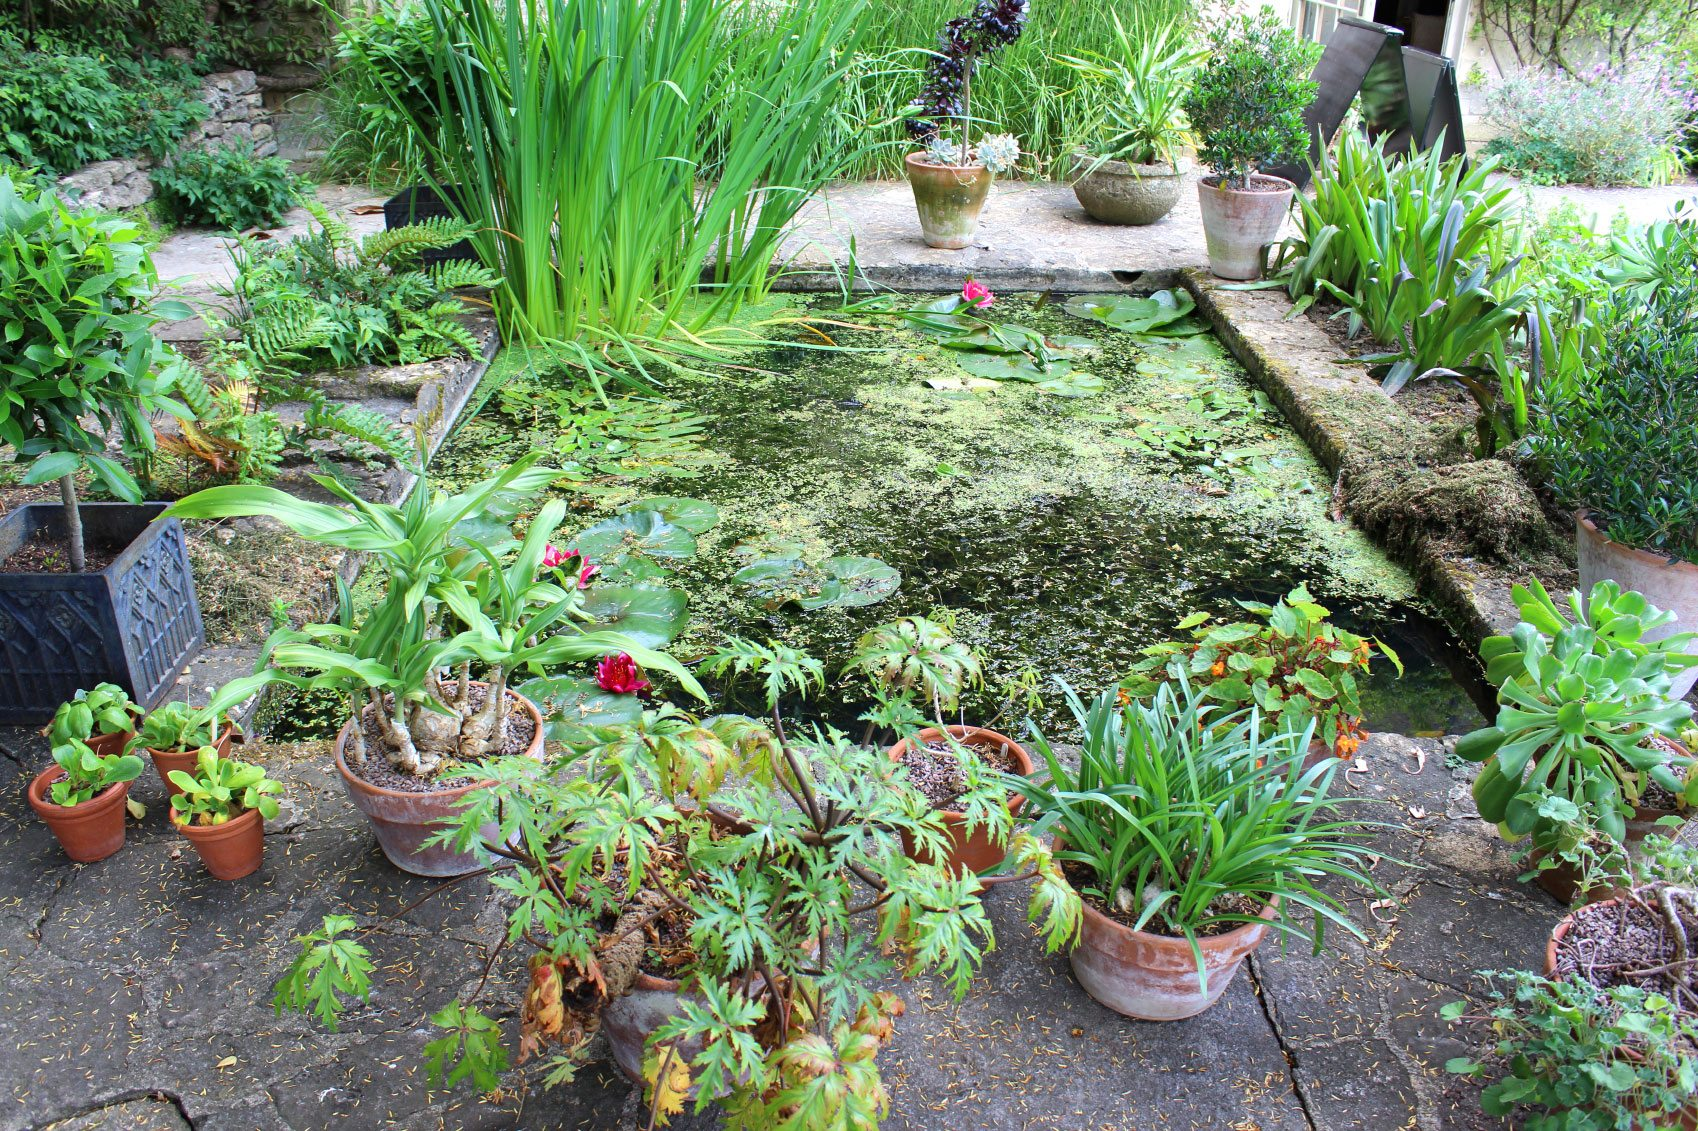 Moisture Loving Plants For Wet Areas - Learn About Water Tolerant Plants